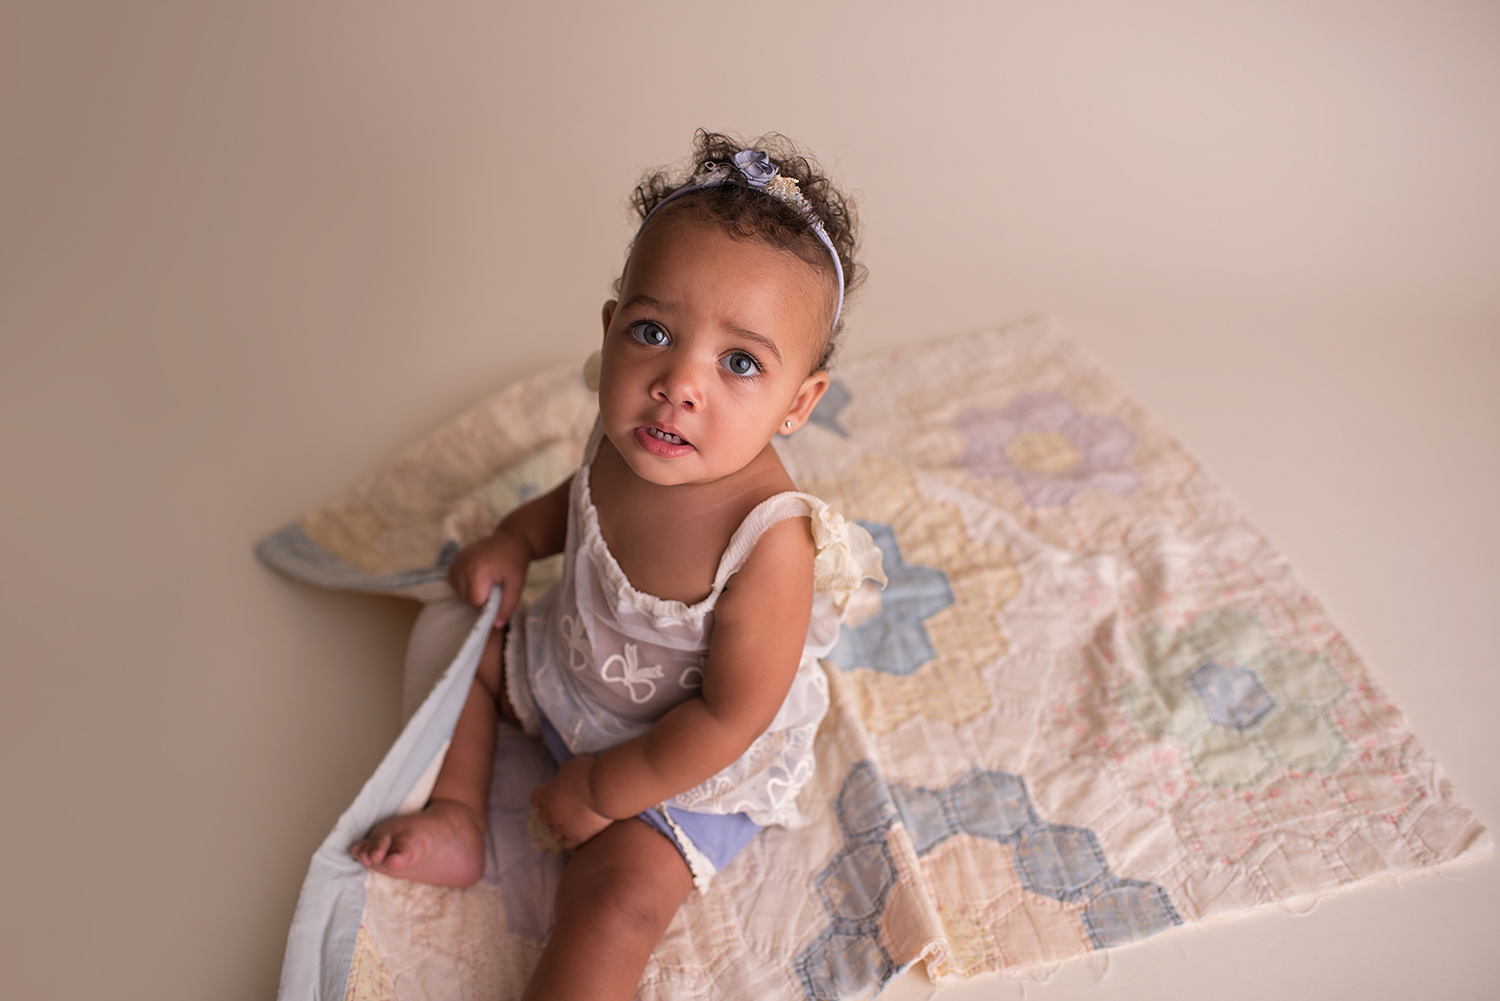 a six month old baby sits on a quilt looking up at camera wearing a lace upcycled outfit